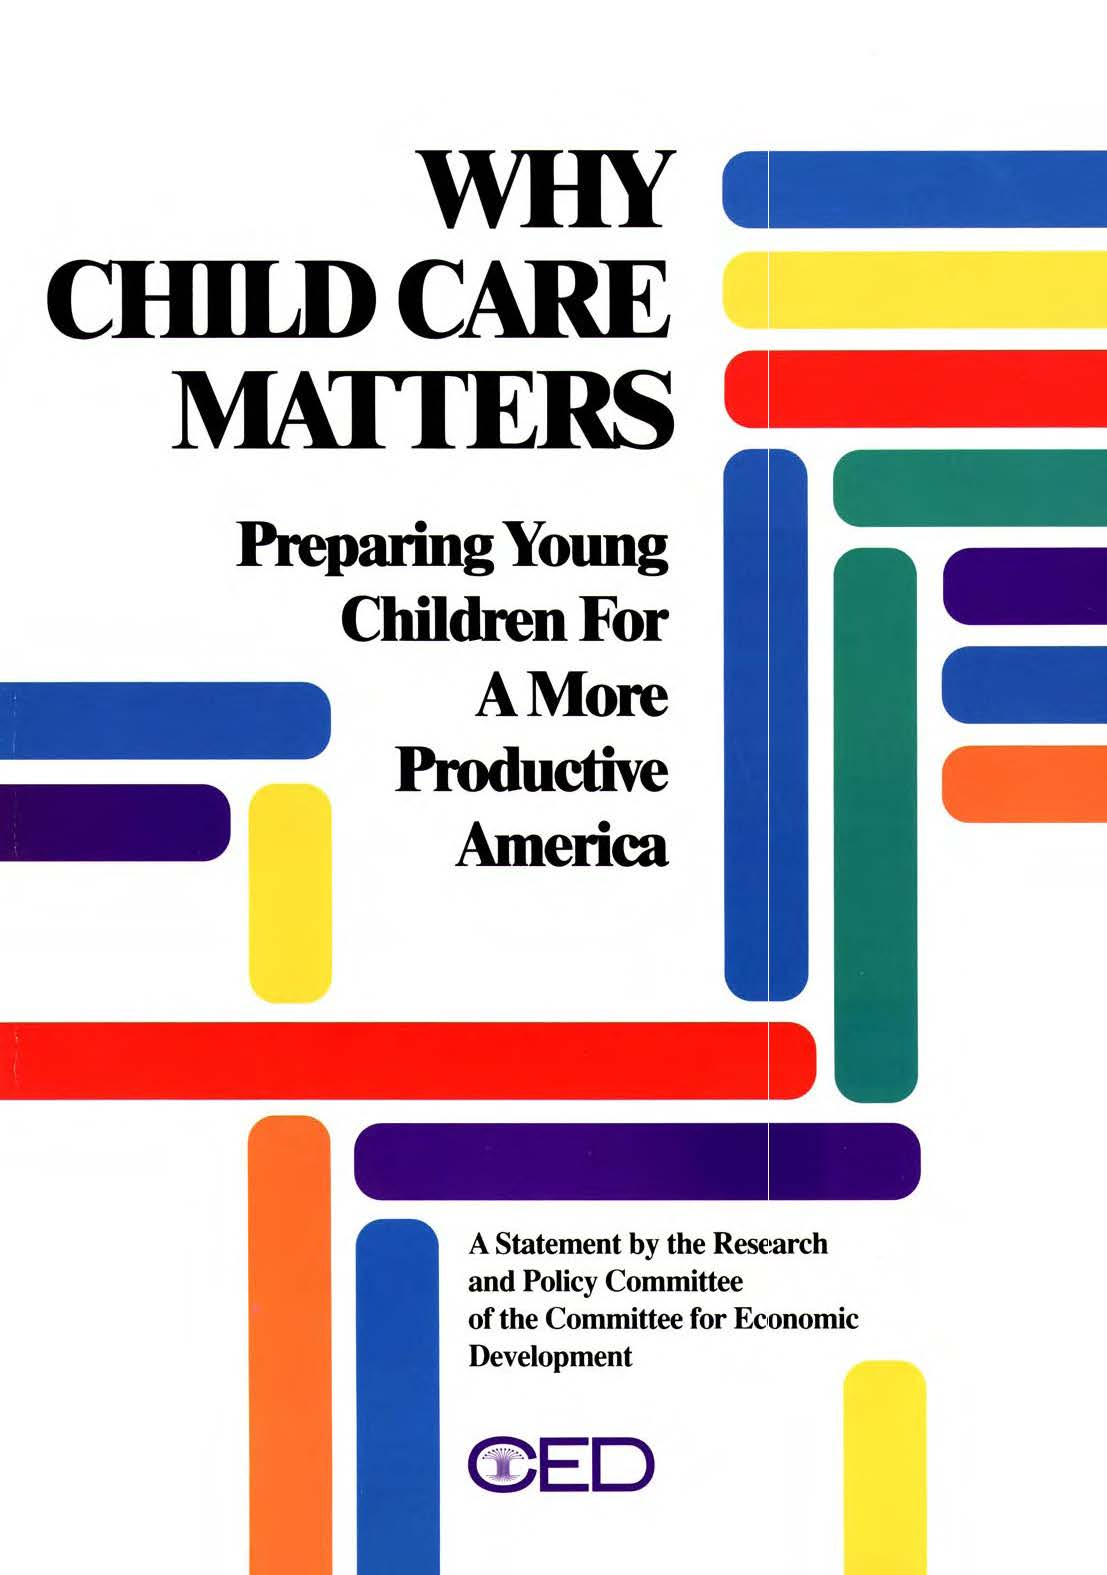 quality child care matters Quality early care and learning by increasing child care assistance to align with   fact sheet: why quality child care matters to employers in alaska (2016).